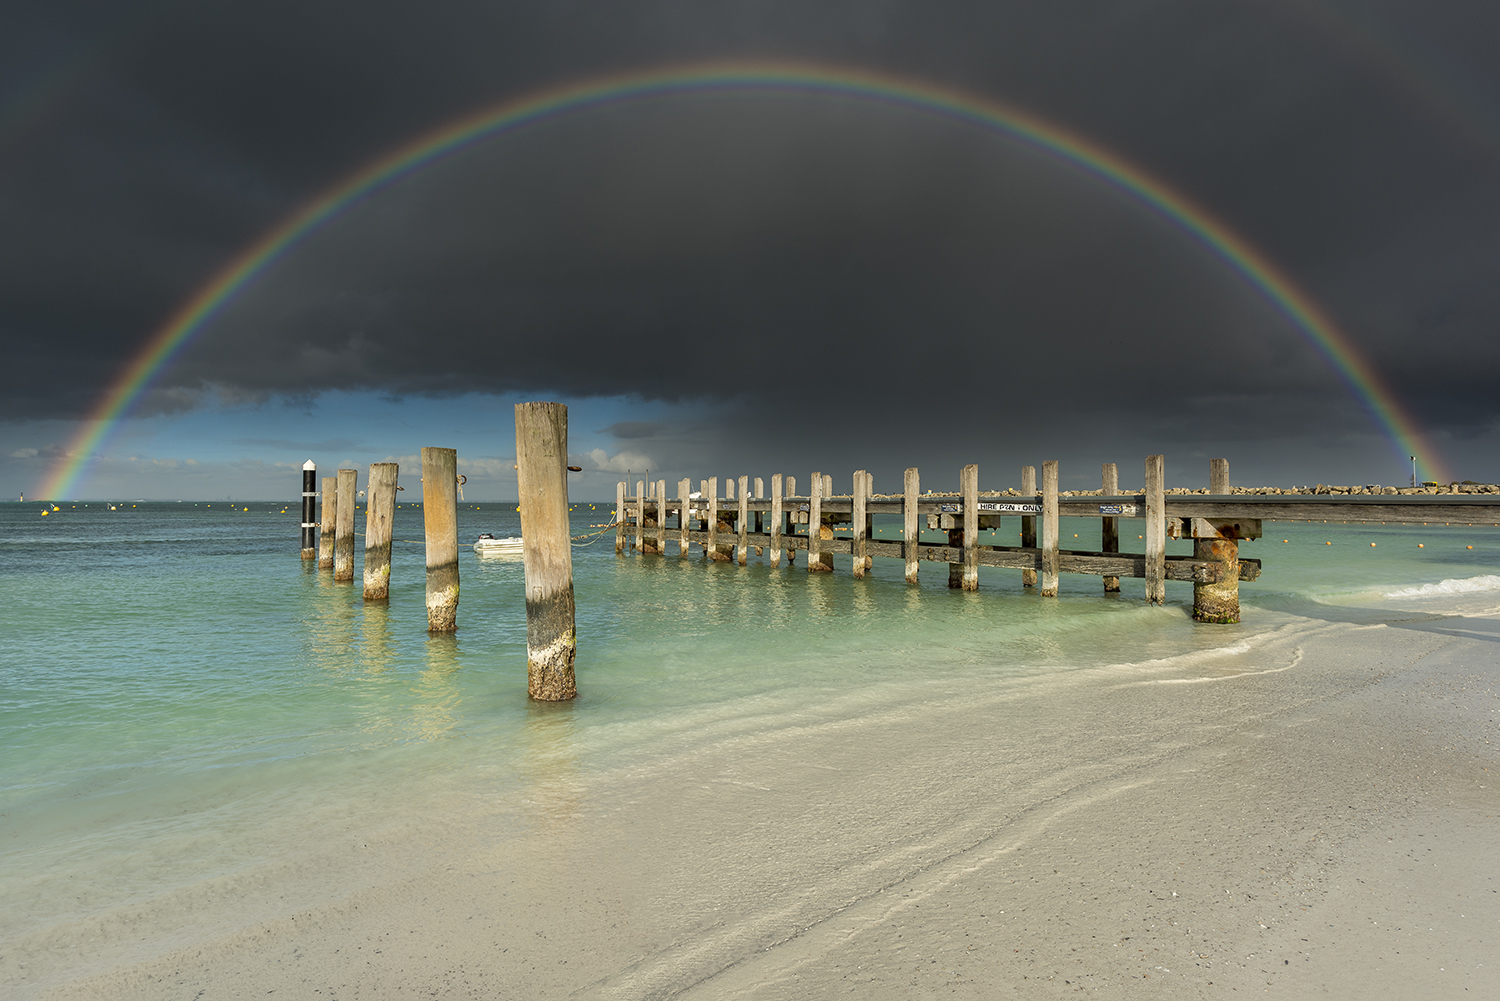 THOMSON BAY - STARK RAINBOWS